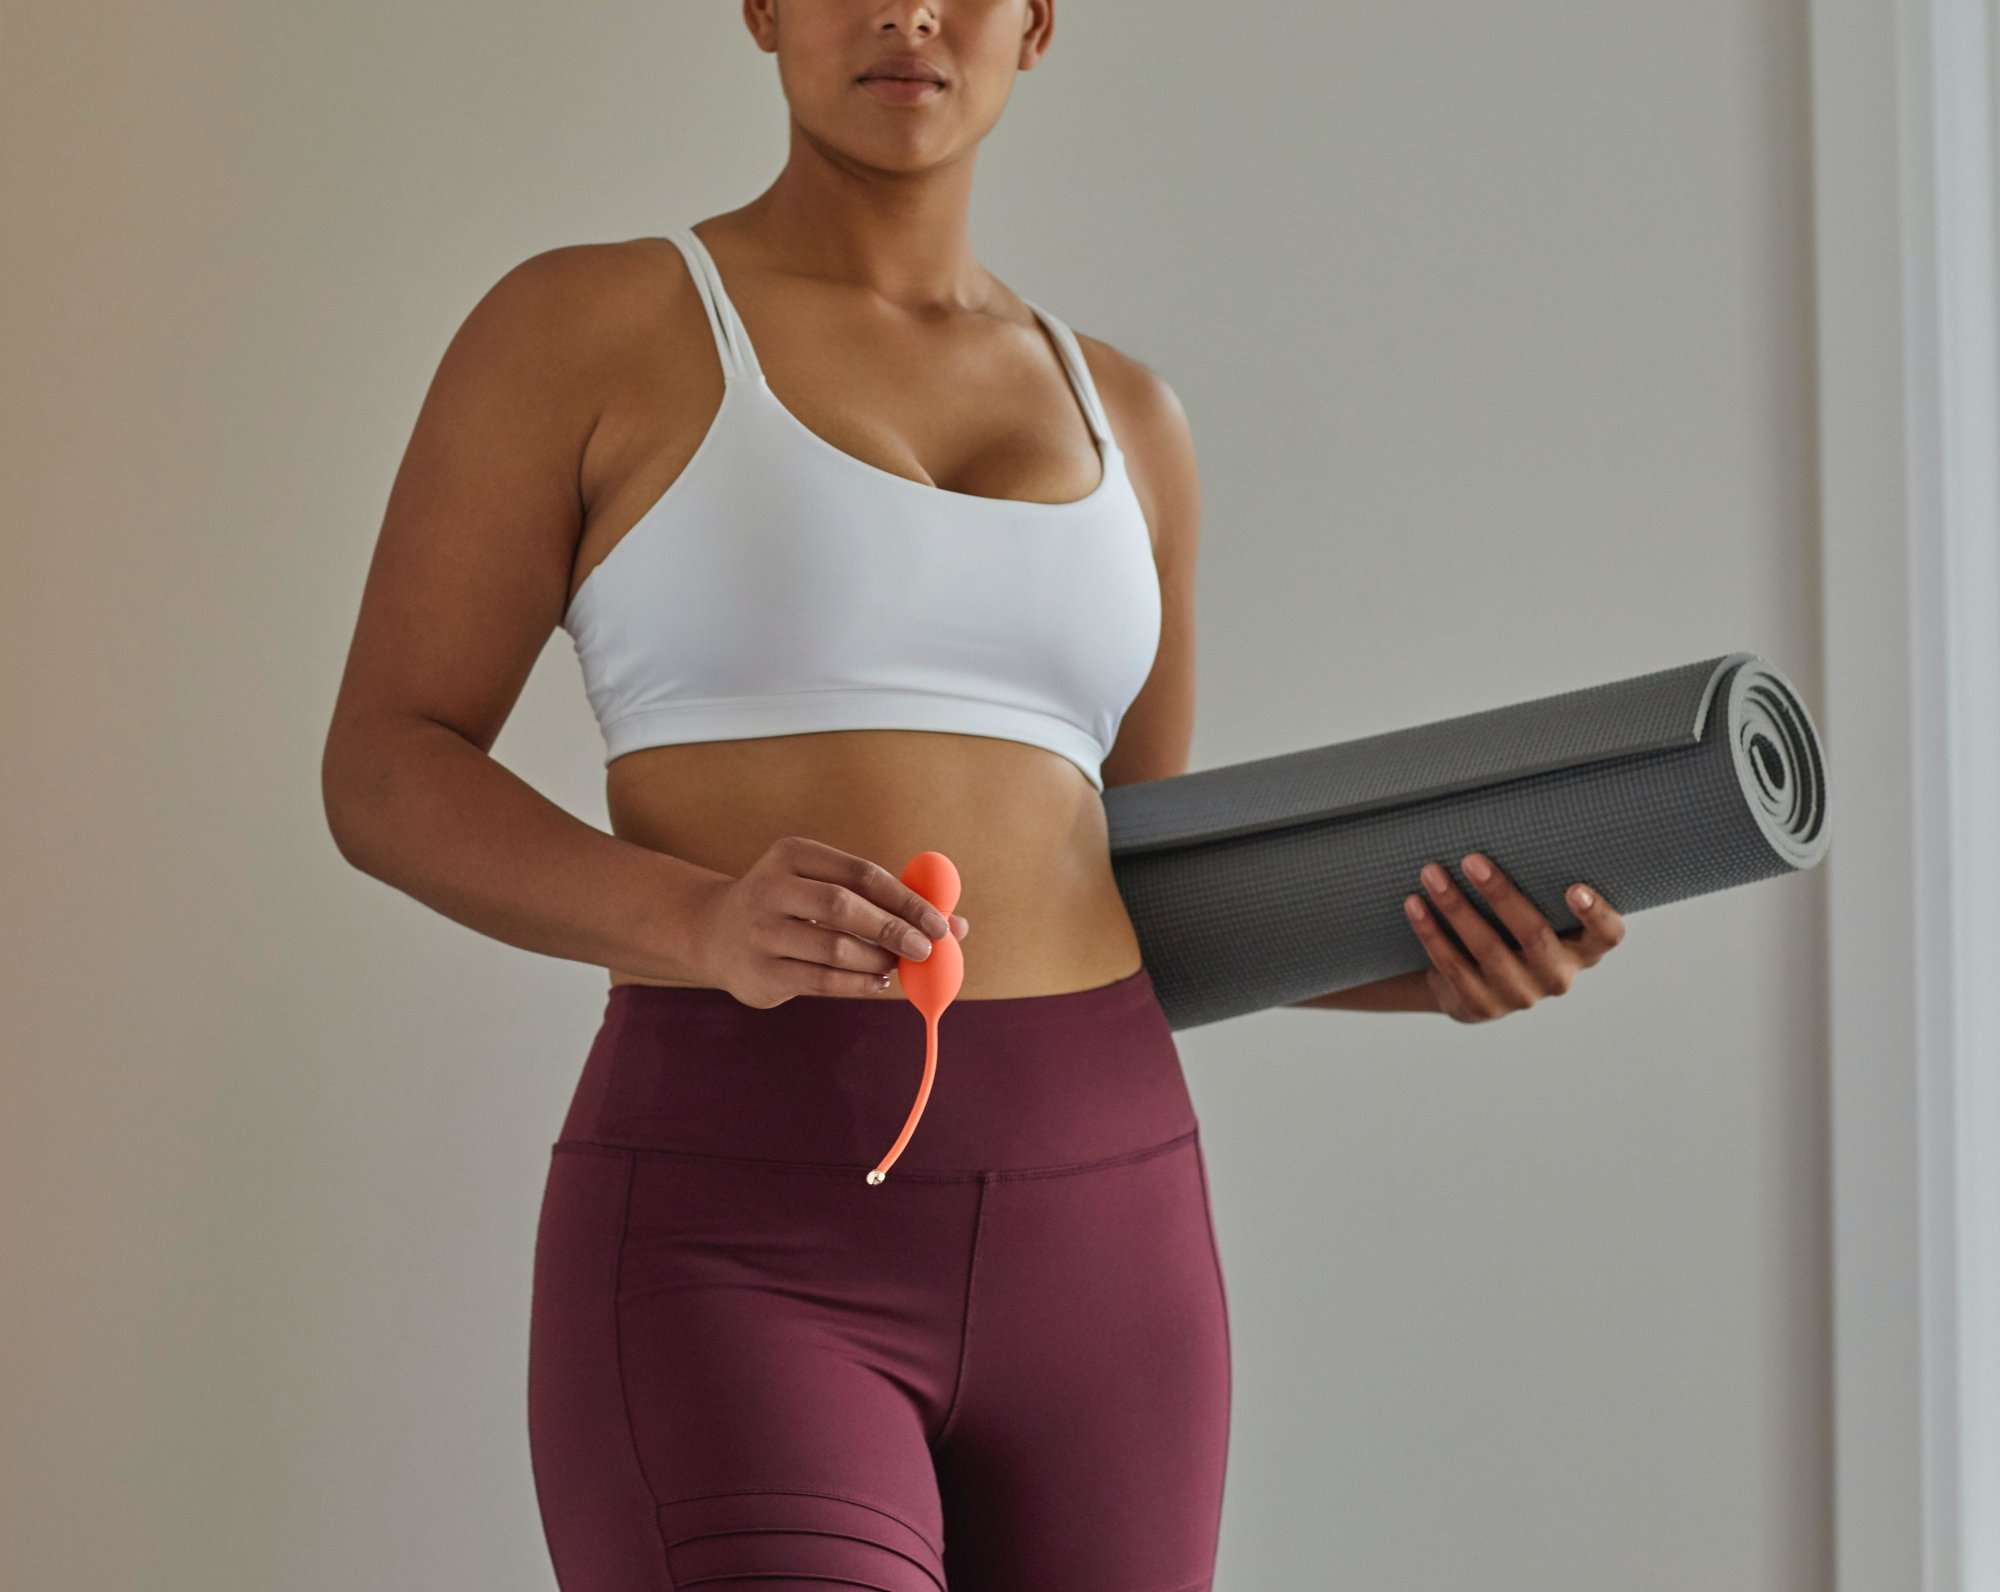 https://www.oneghec.com/list-of-the-top-3-best-blog-on-cycling-exercising-and-reducing-weight/sports-bra-best-bra-choosing-sports-bra